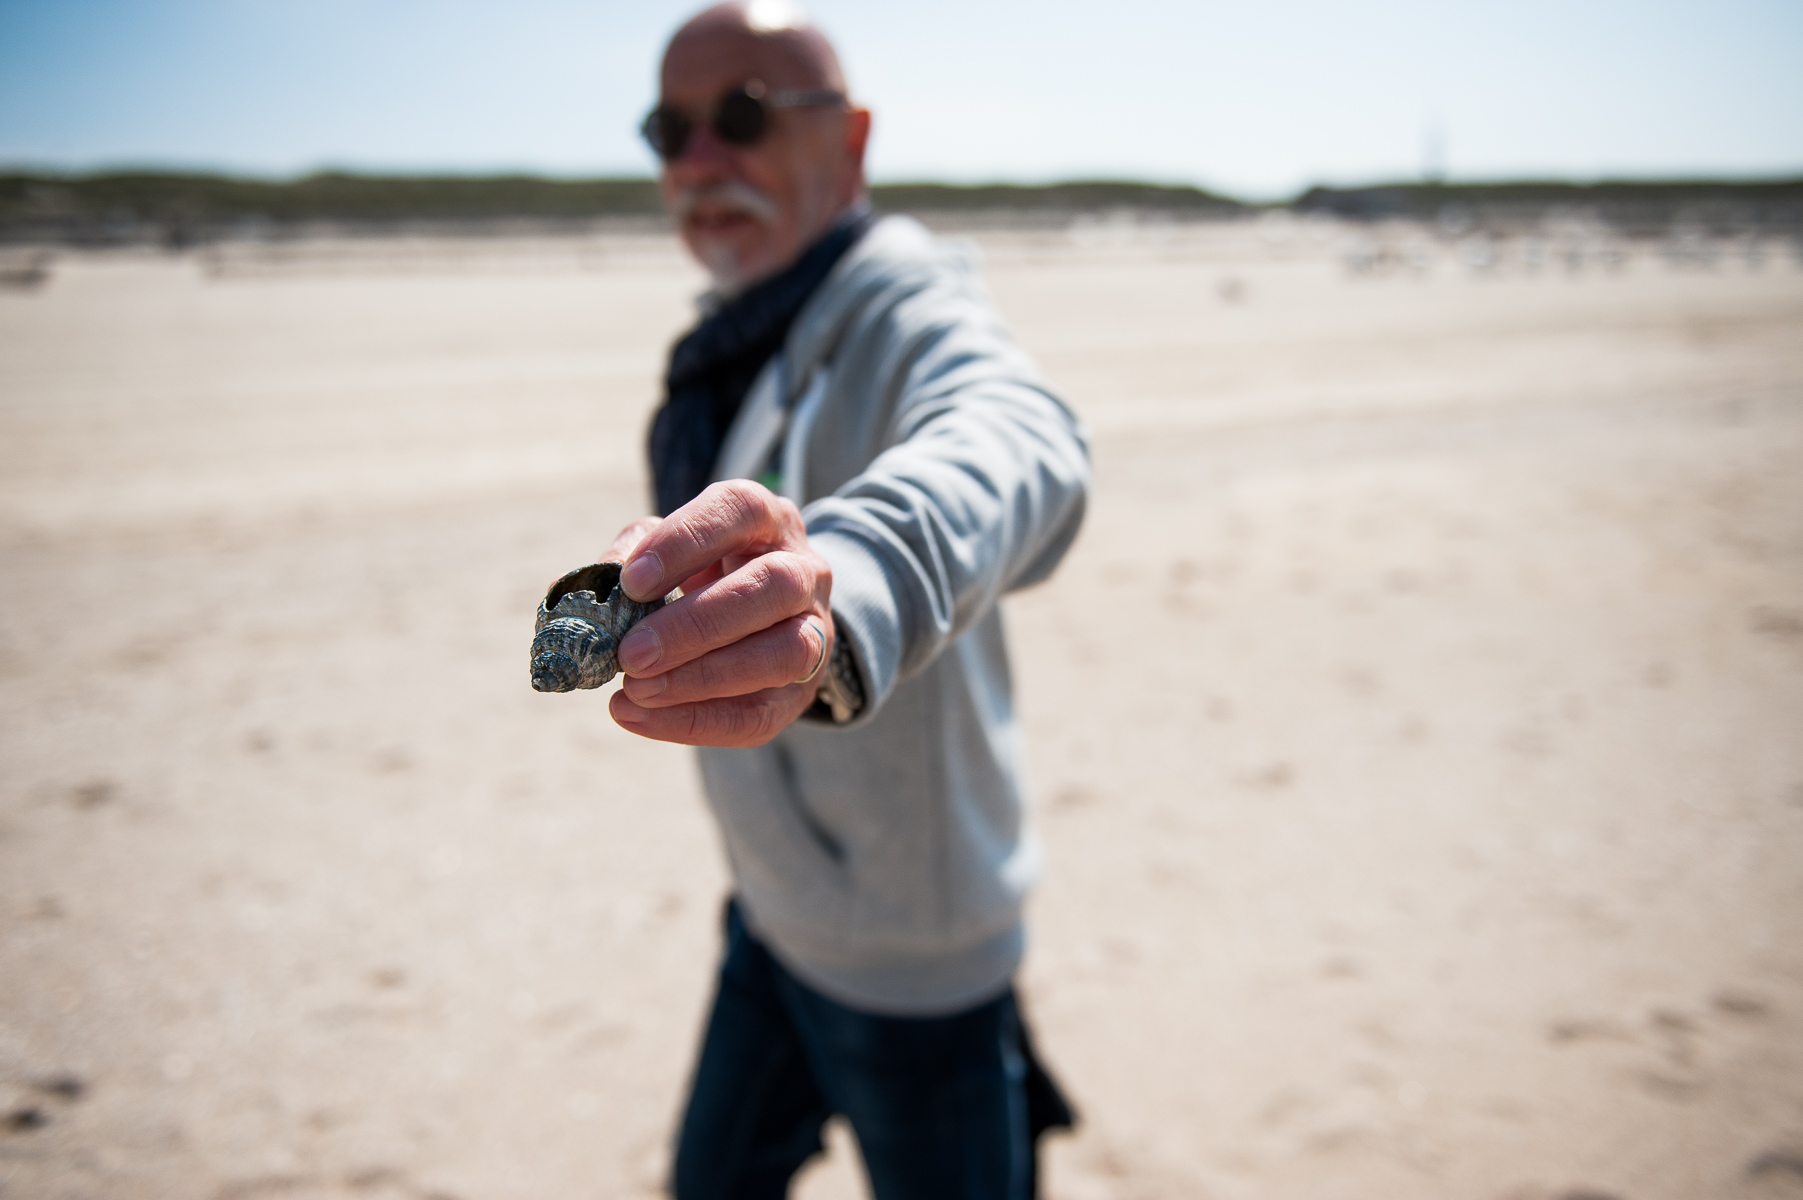 Dad shows a clamshell he found on the beach. Westerland, Germany, May 23, 2019.